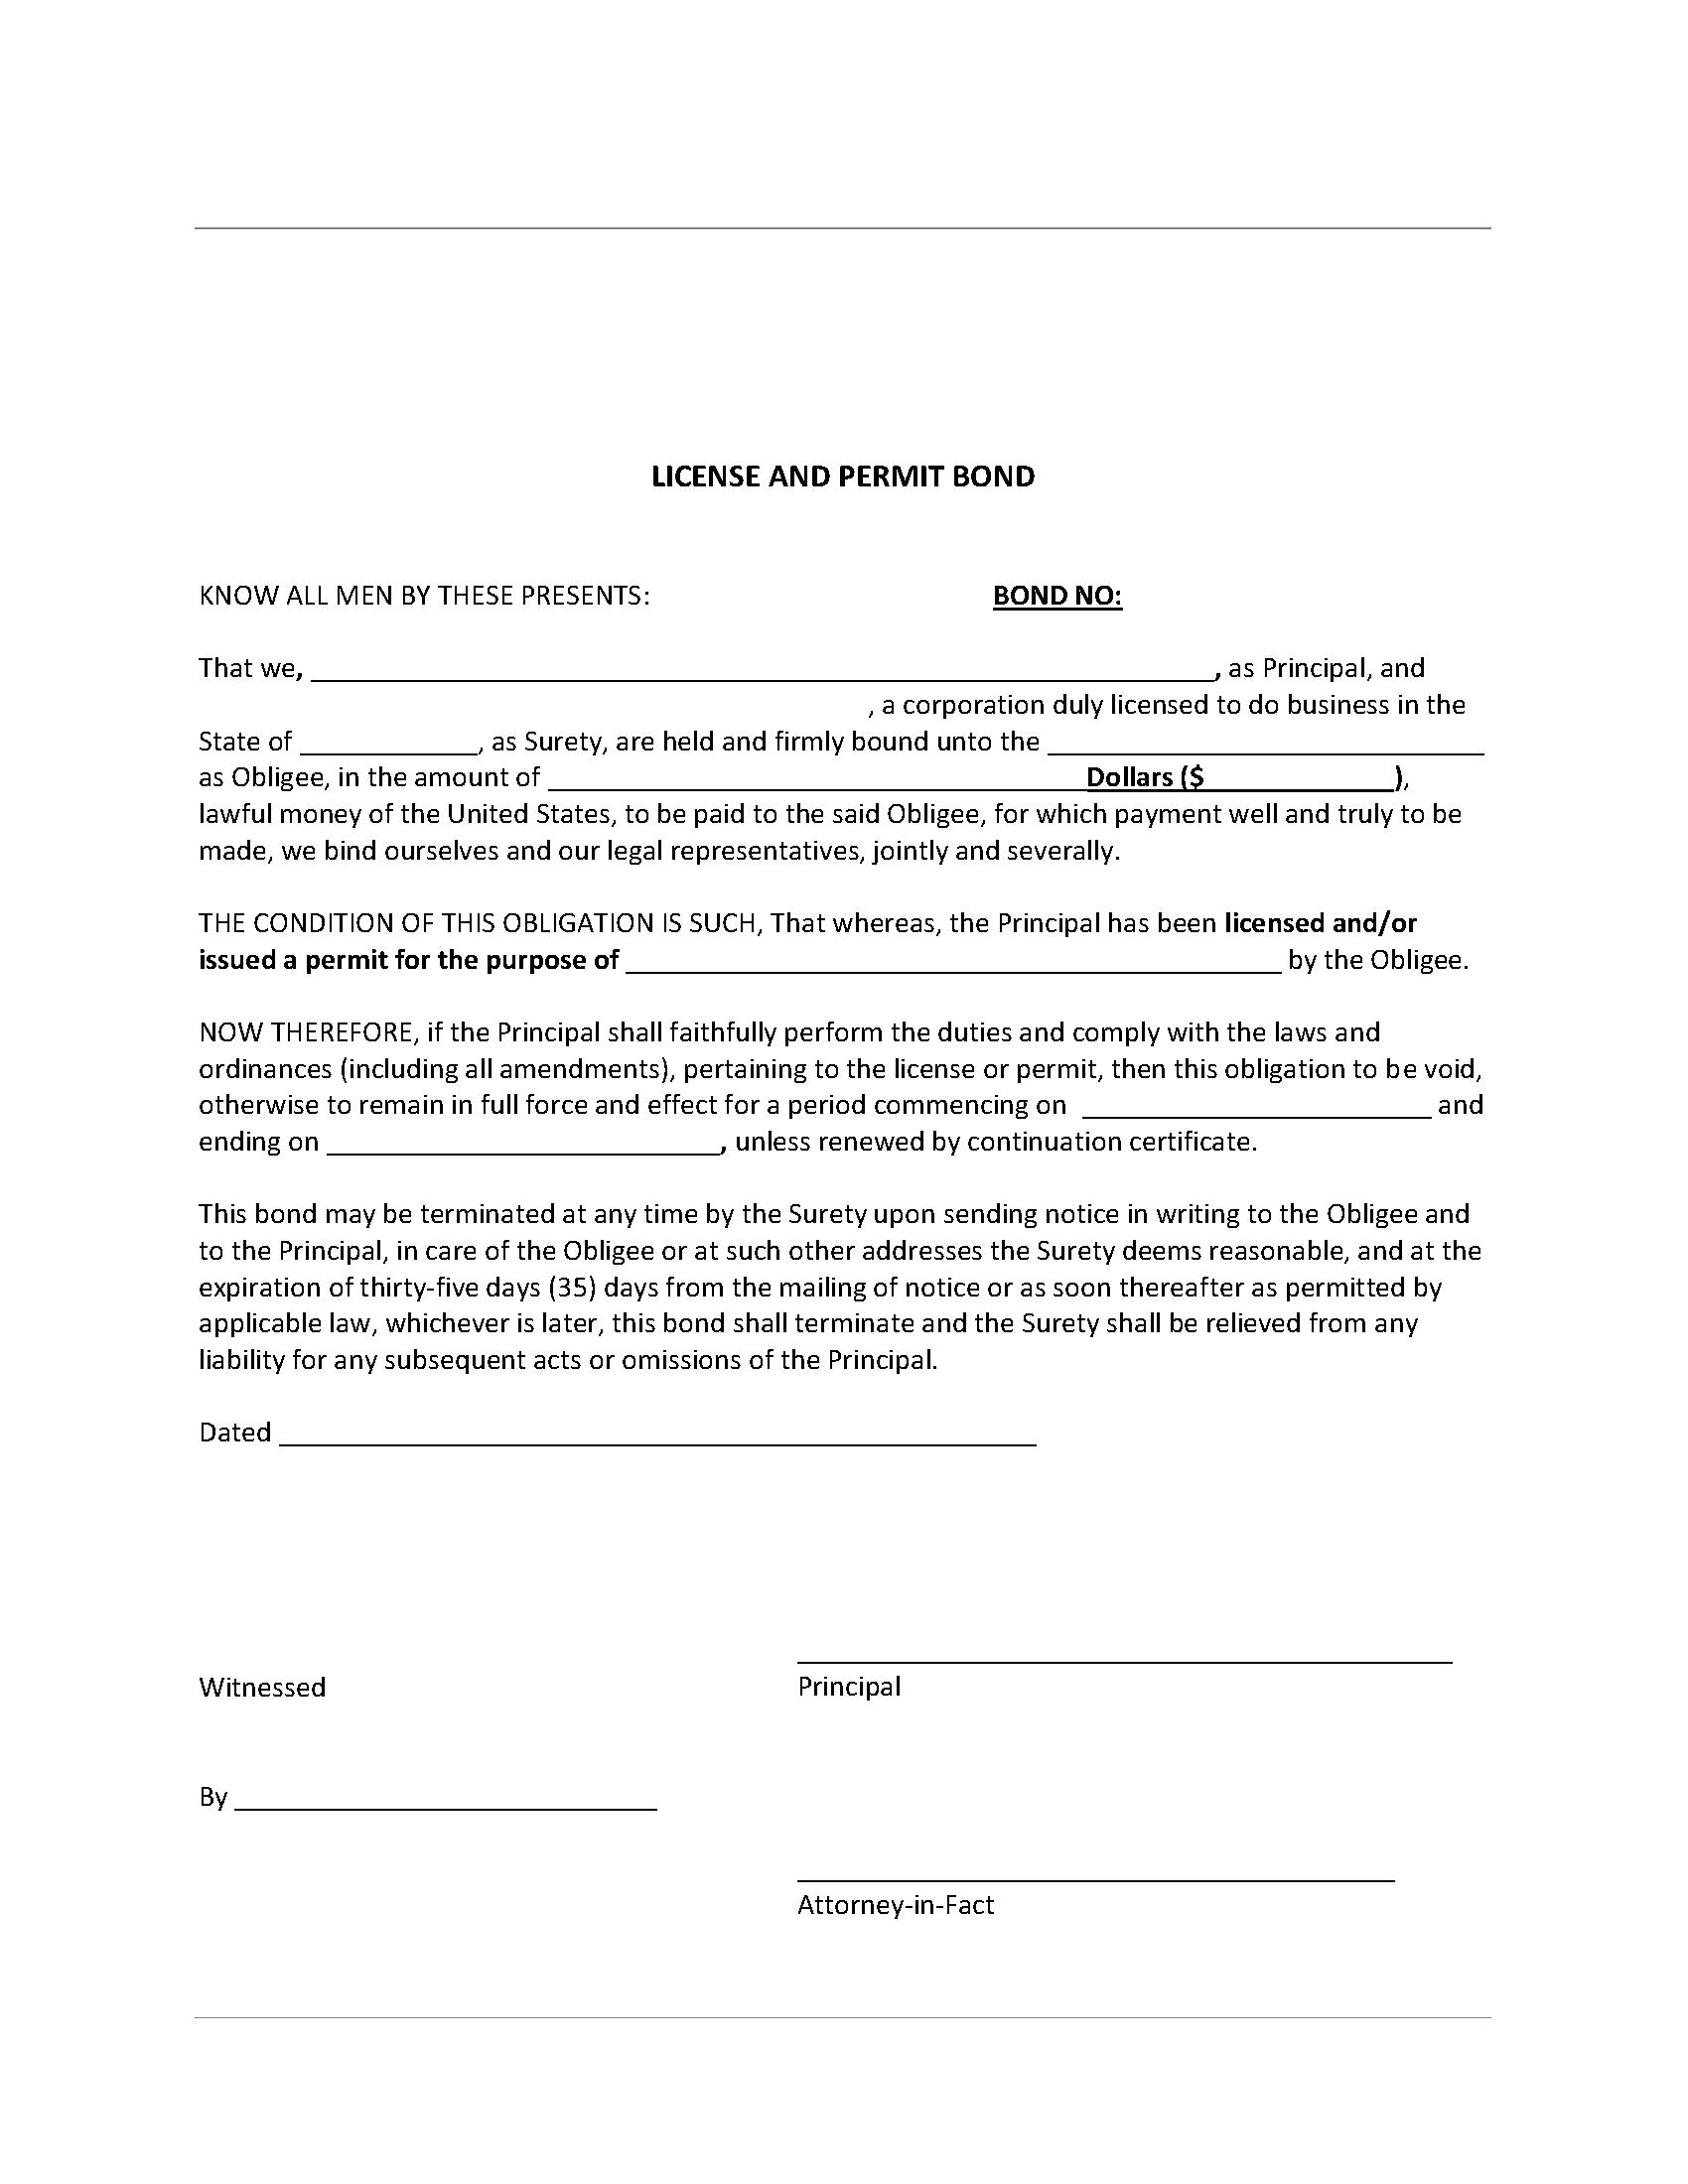 Porter County Contractor's License sample image